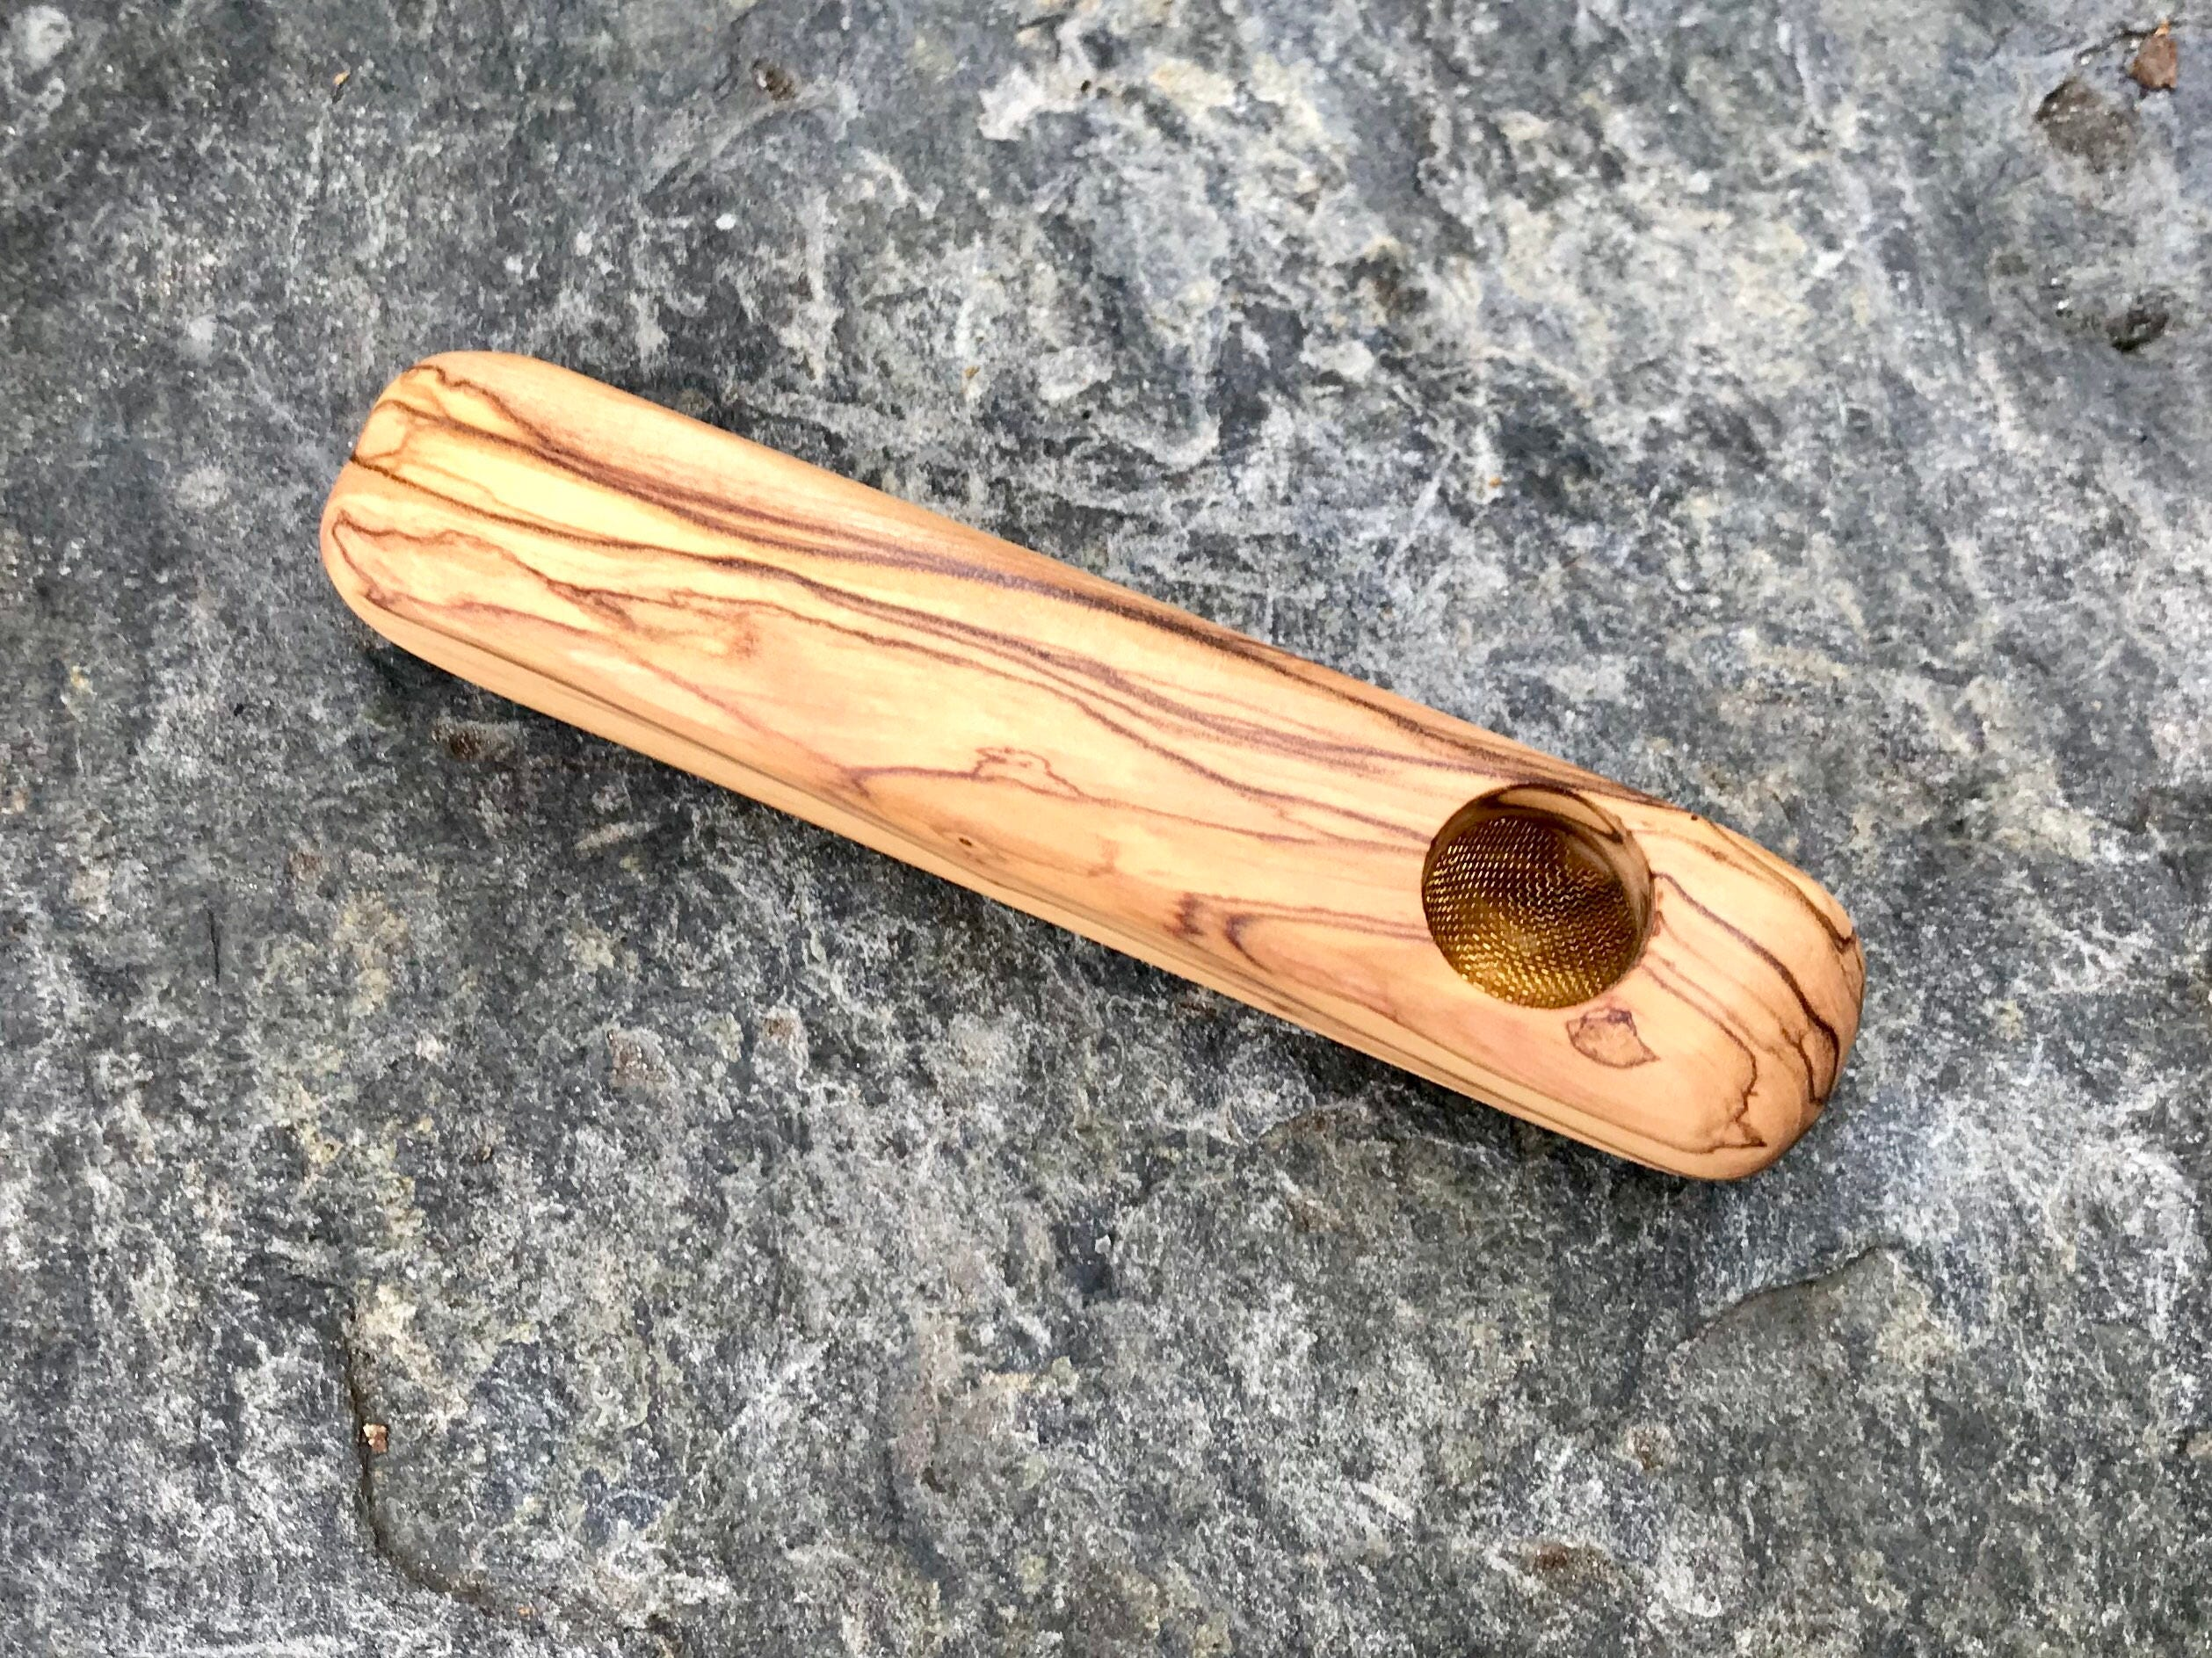 Wooden smoking pipehandmade wood pipesolive wood pipepeace pipetravel pipesmoking pipessmoking bowlshandmade pipessmall wood pipe & Wooden smoking pipehandmade wood pipesolive wood pipepeace pipe ...